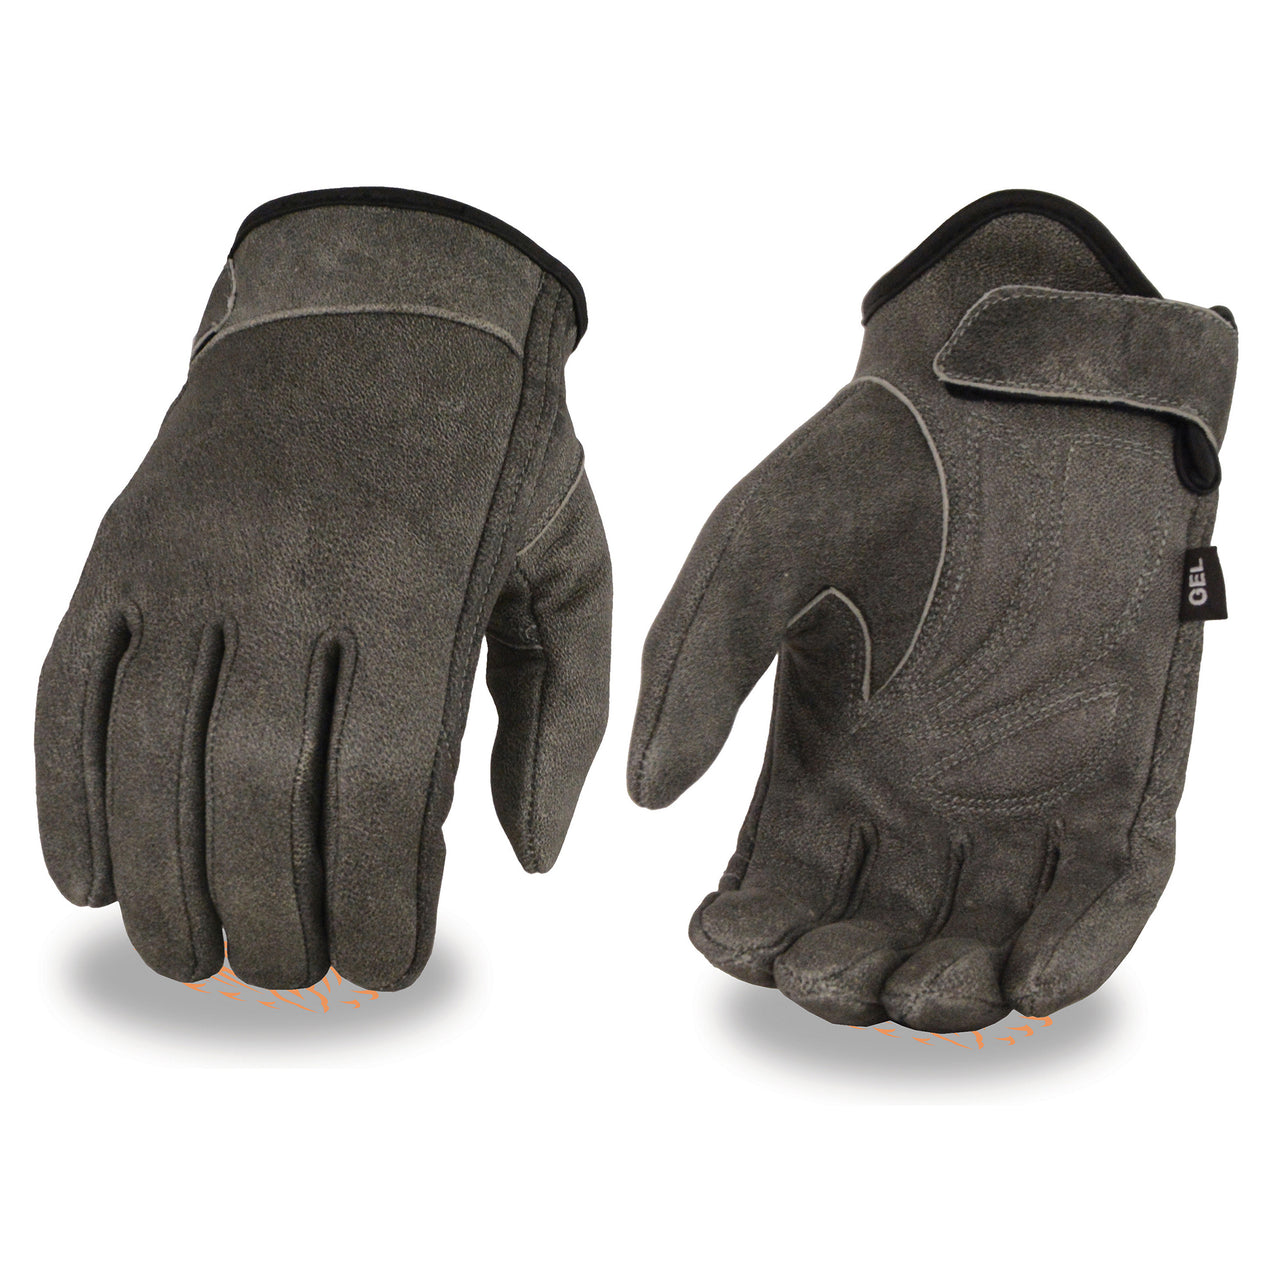 Men's Distressed Gray Leather Gloves with Gel Palm & Wrist Strap - HighwayLeather